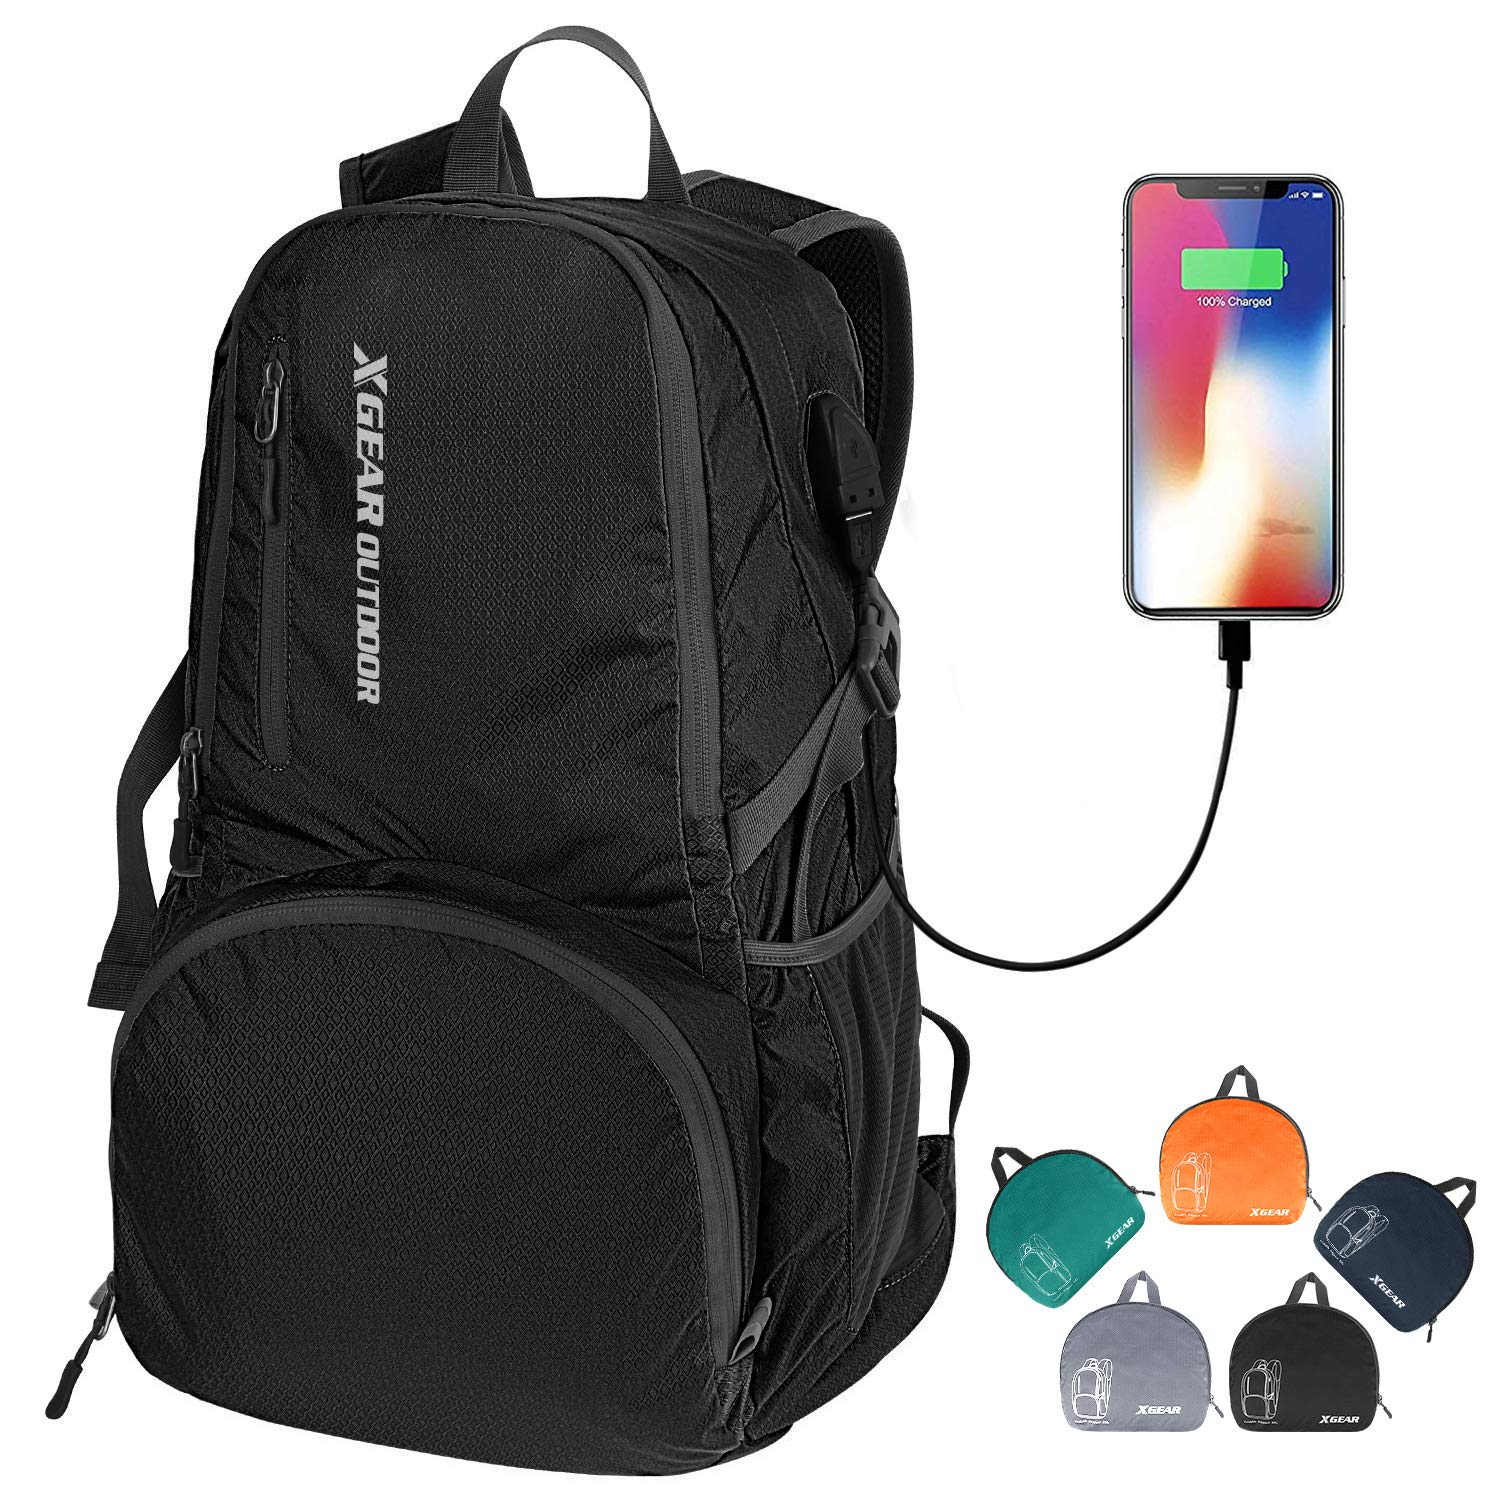 XGear 35L Ultralight Foldable Backpack Travel Packable Hiking Daypack